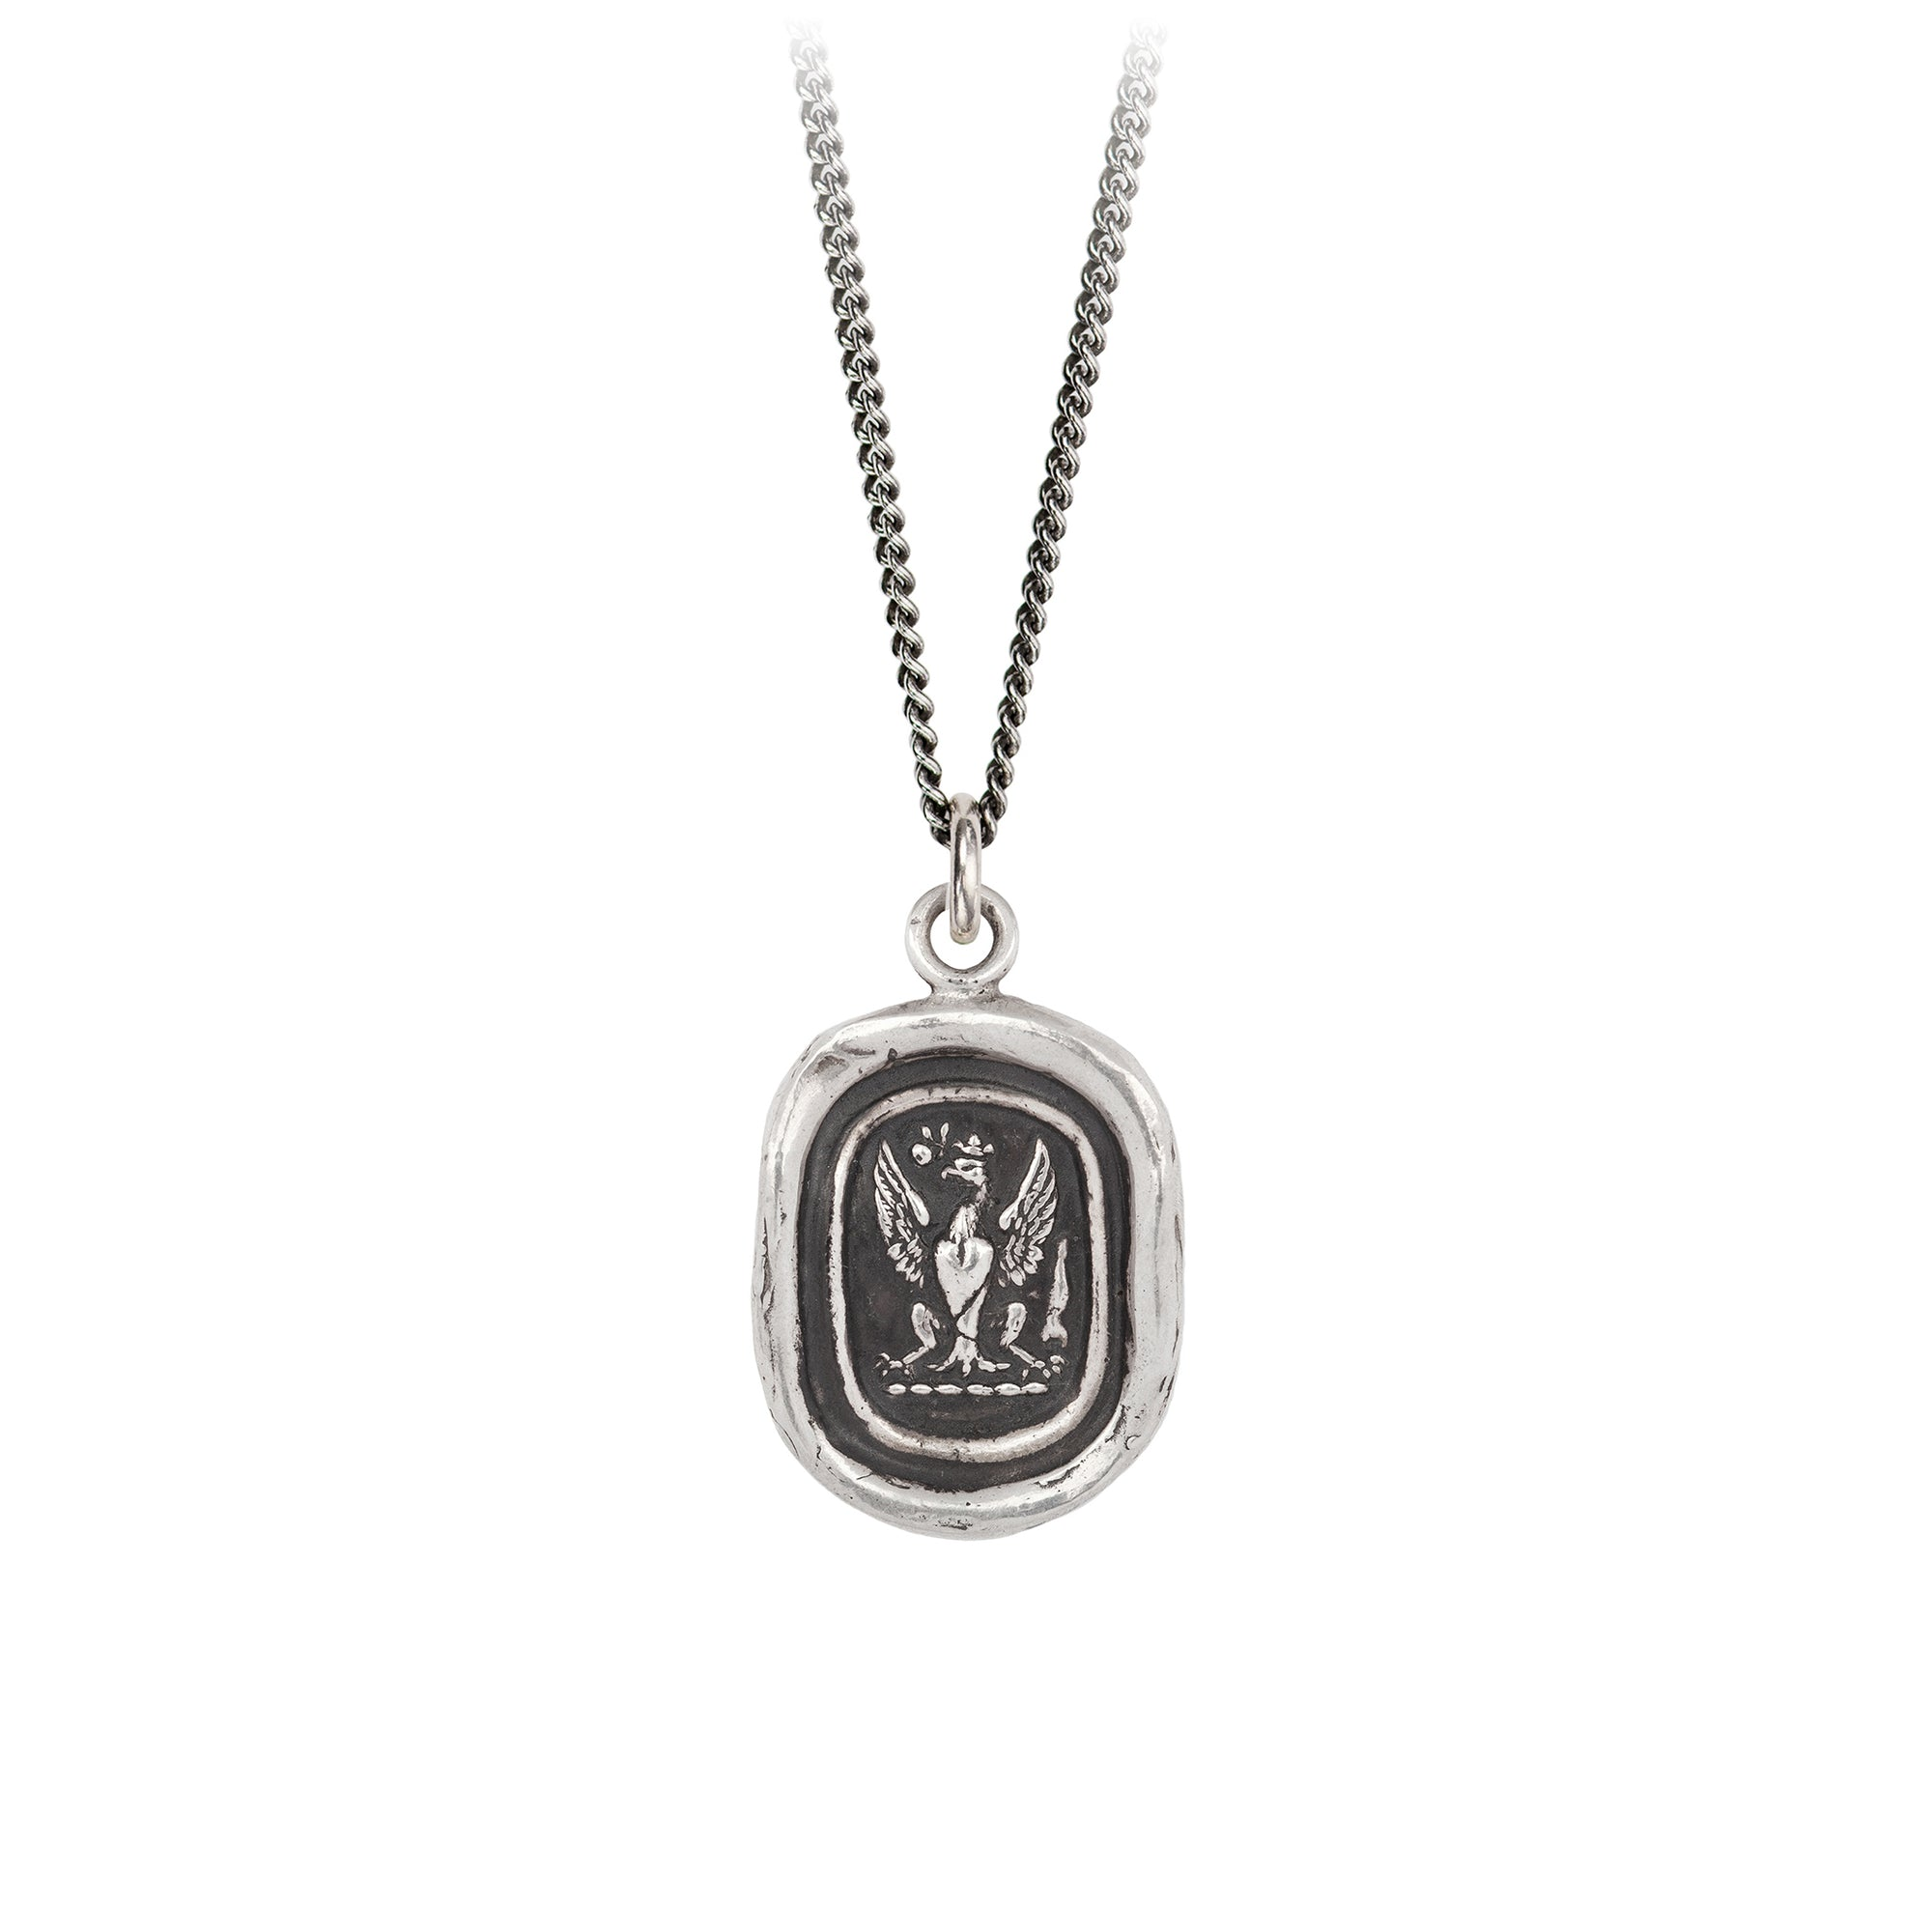 Pyrrha Follow Your Dreams Talisman Necklace Silver